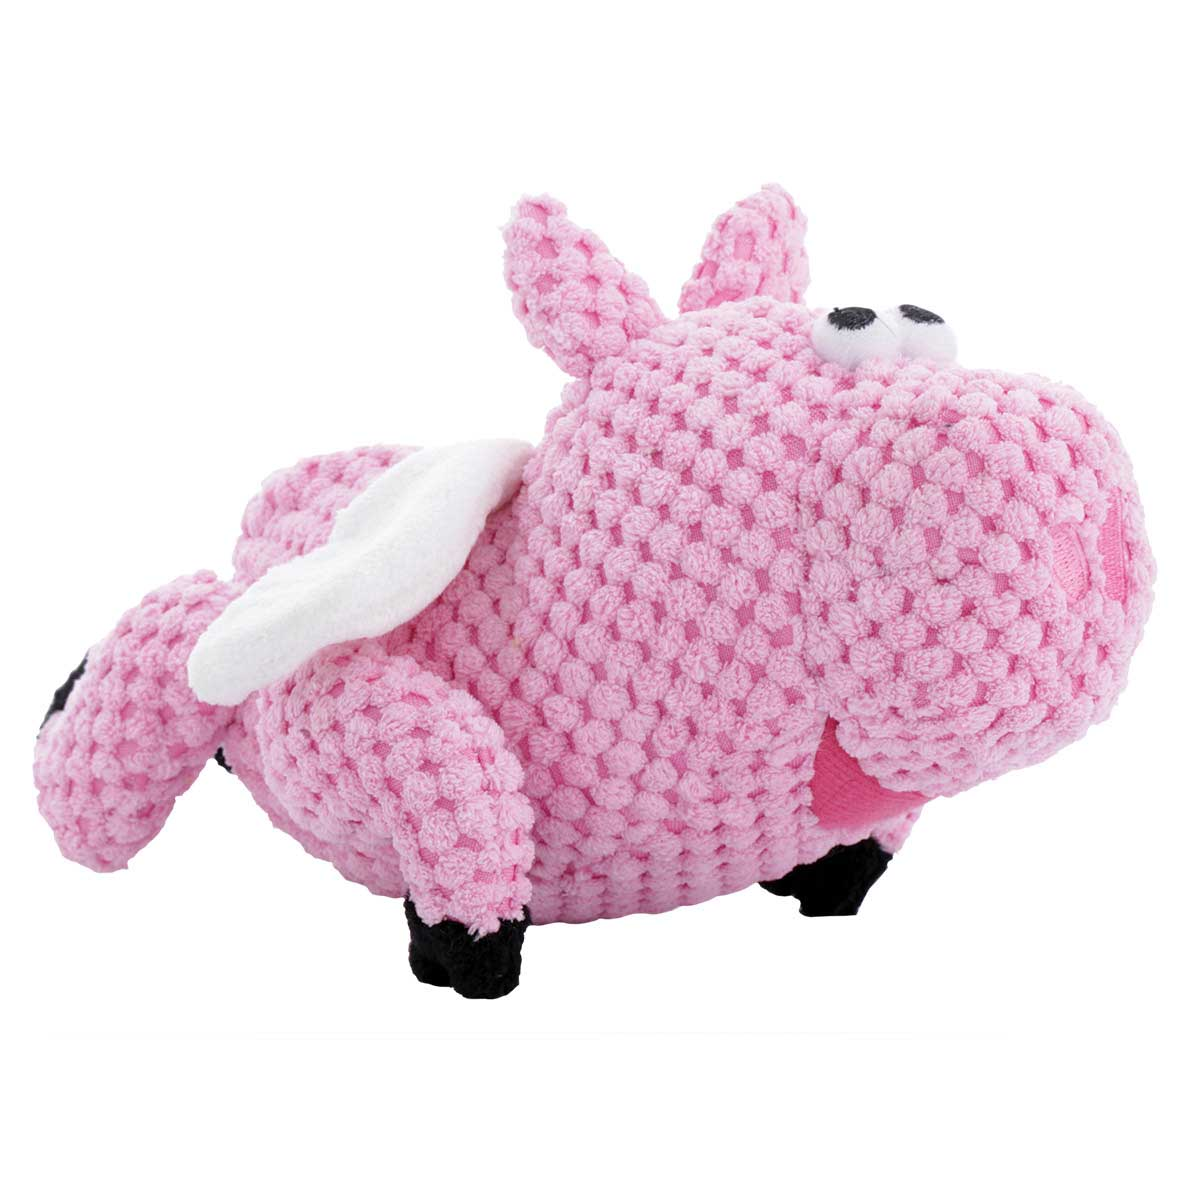 Small goDog Checkers Flying Pig Dog Toy 8 inch